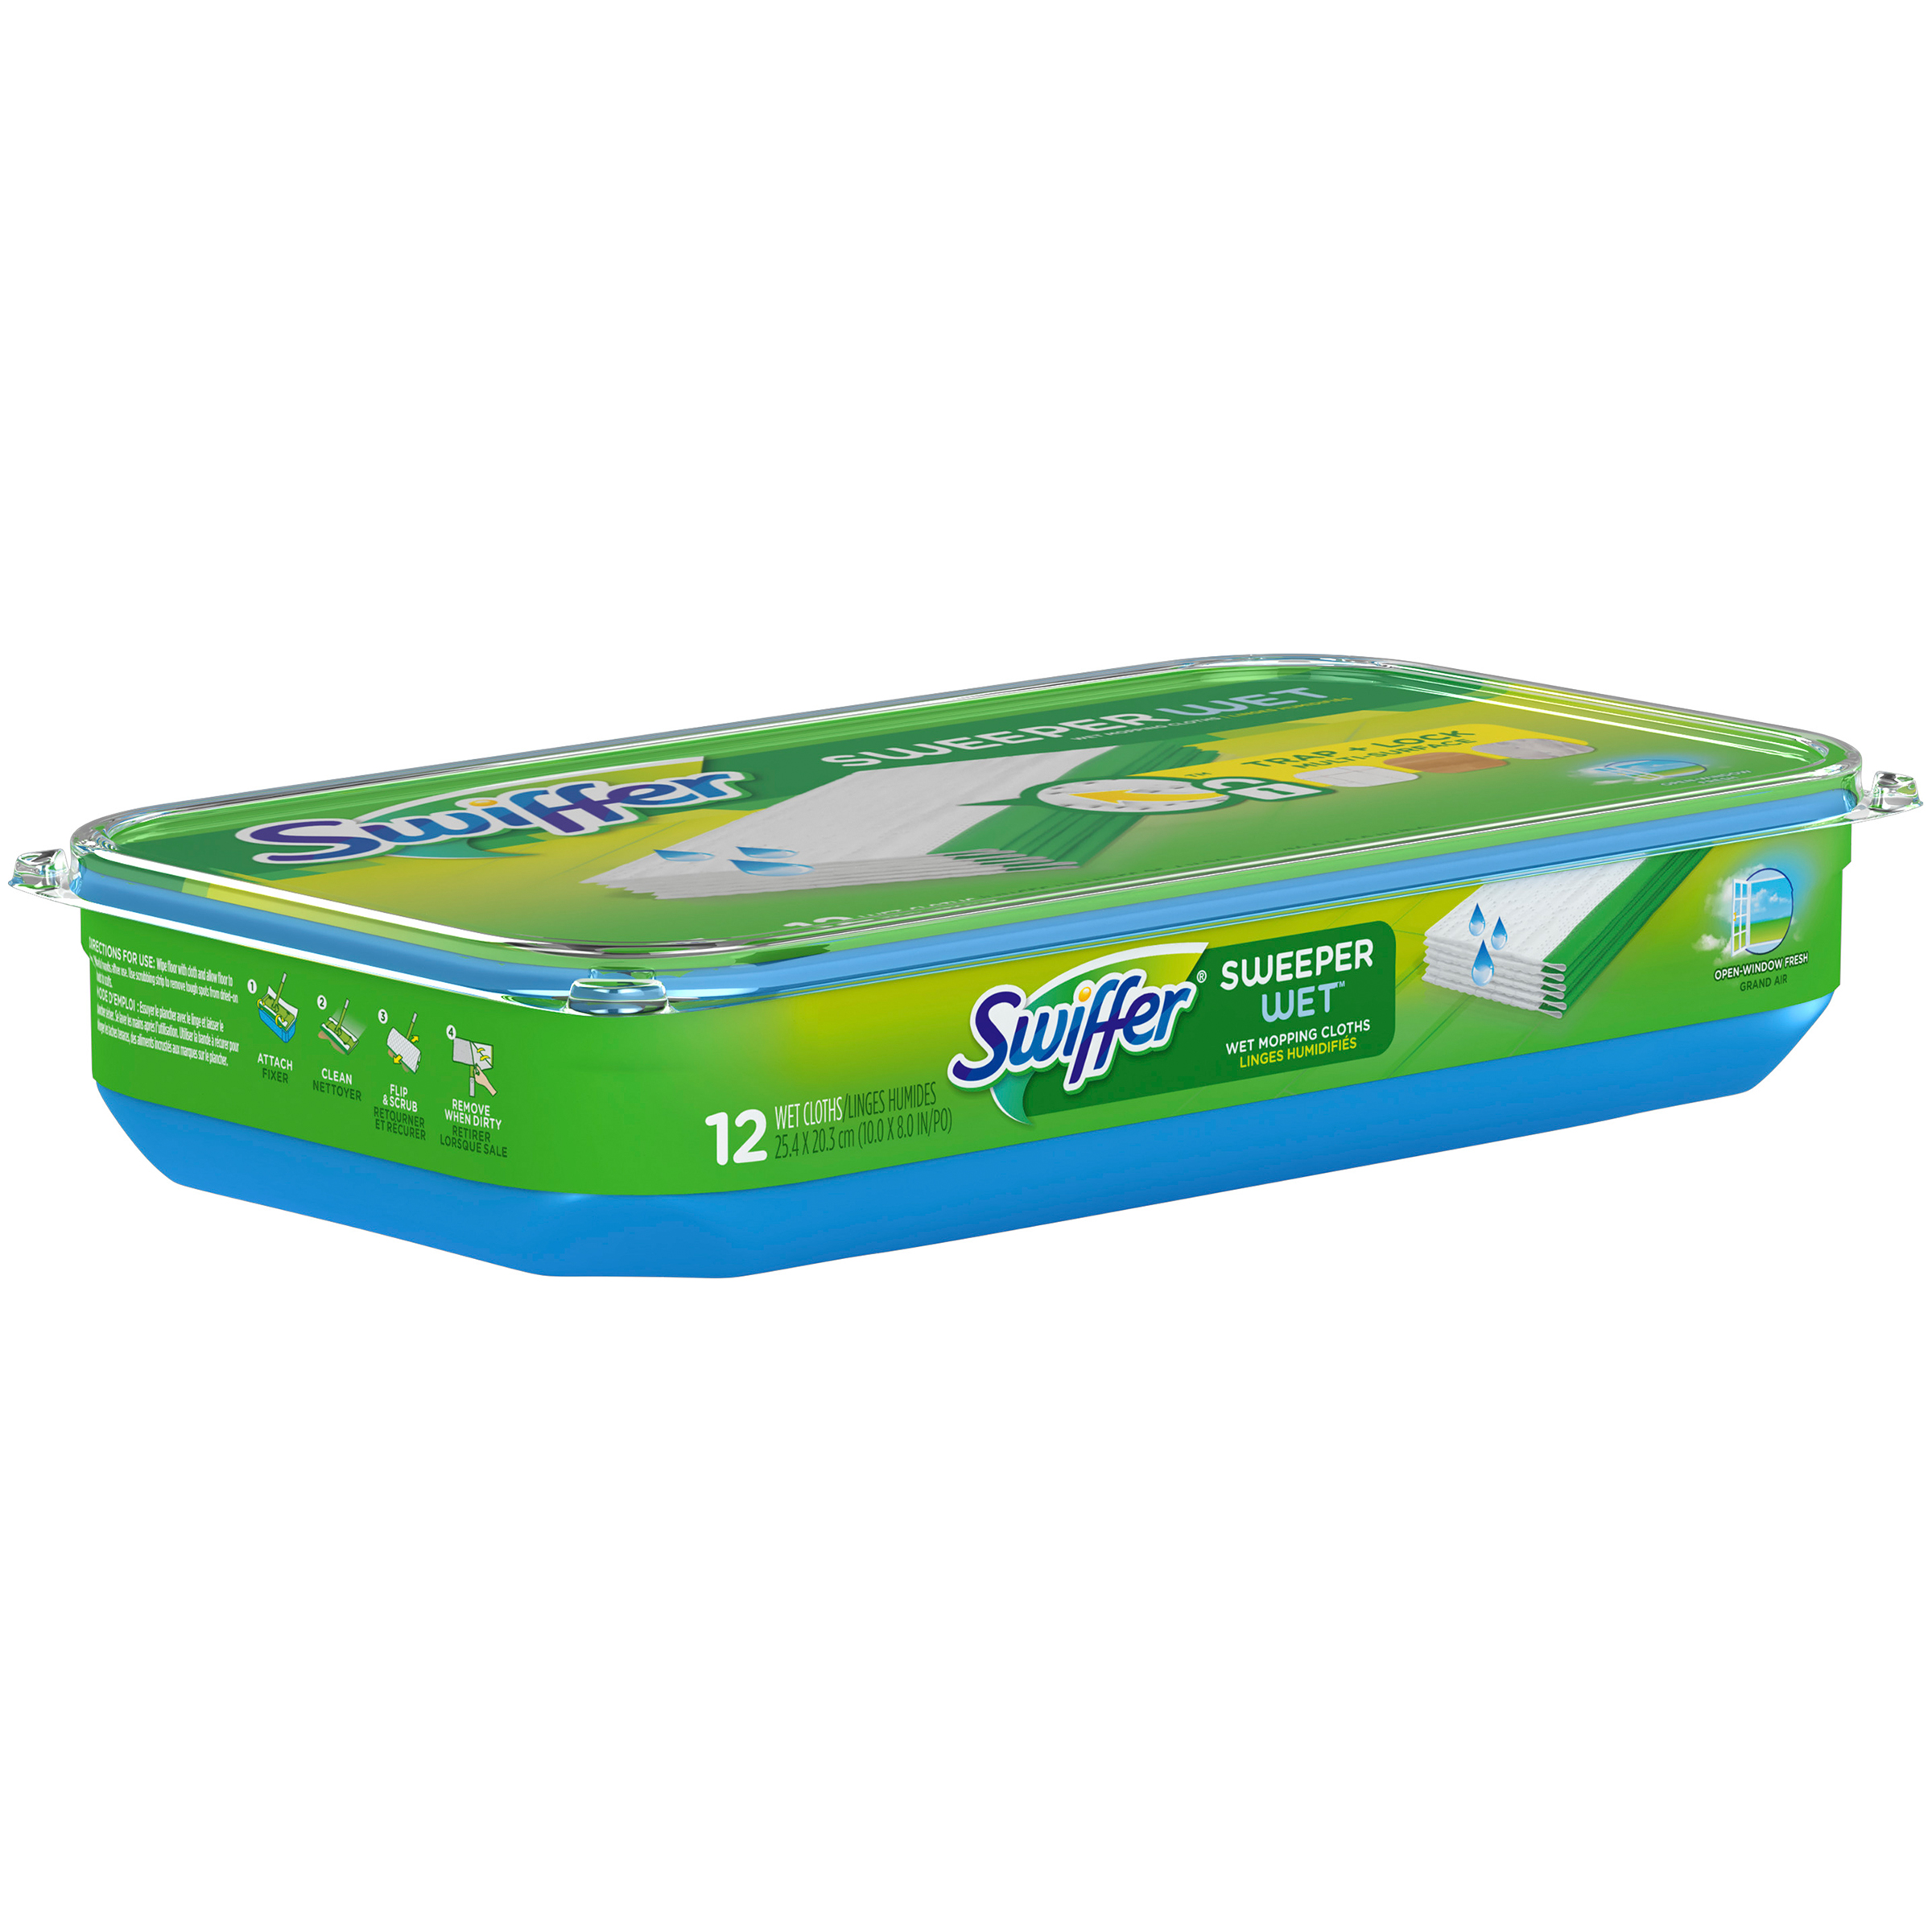 Swiffer SWFR Wet Cloth OWF 6/12ct Surface Care 12 CT TUB